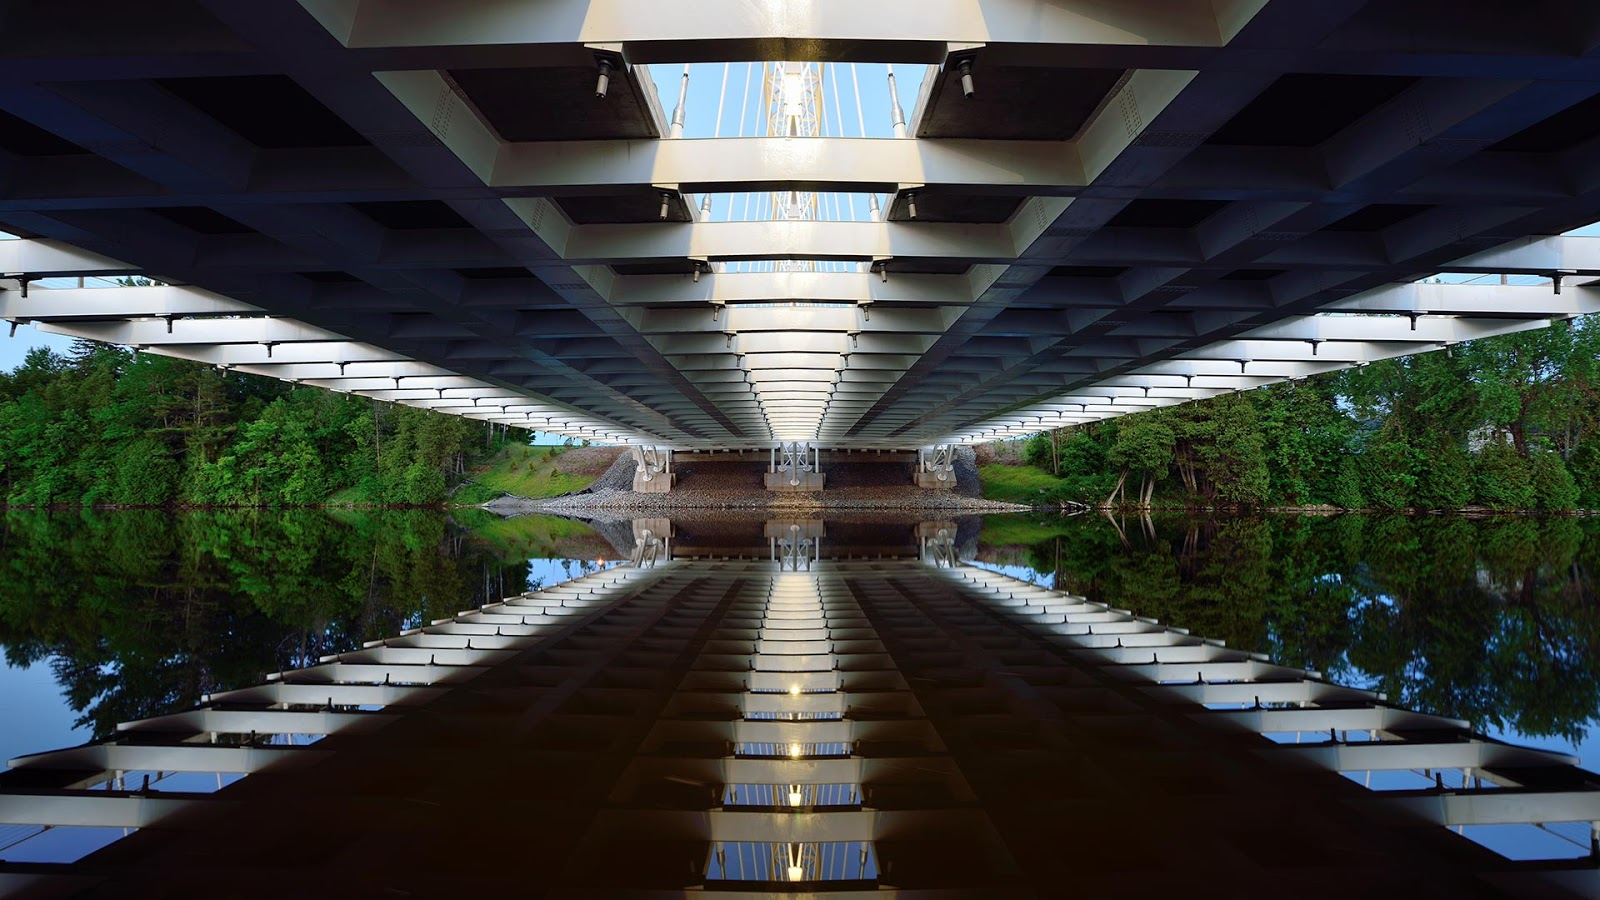 Reflection of the Vimy Memorial Bridge in Ottawa © Saffron Blaze/Getty Images